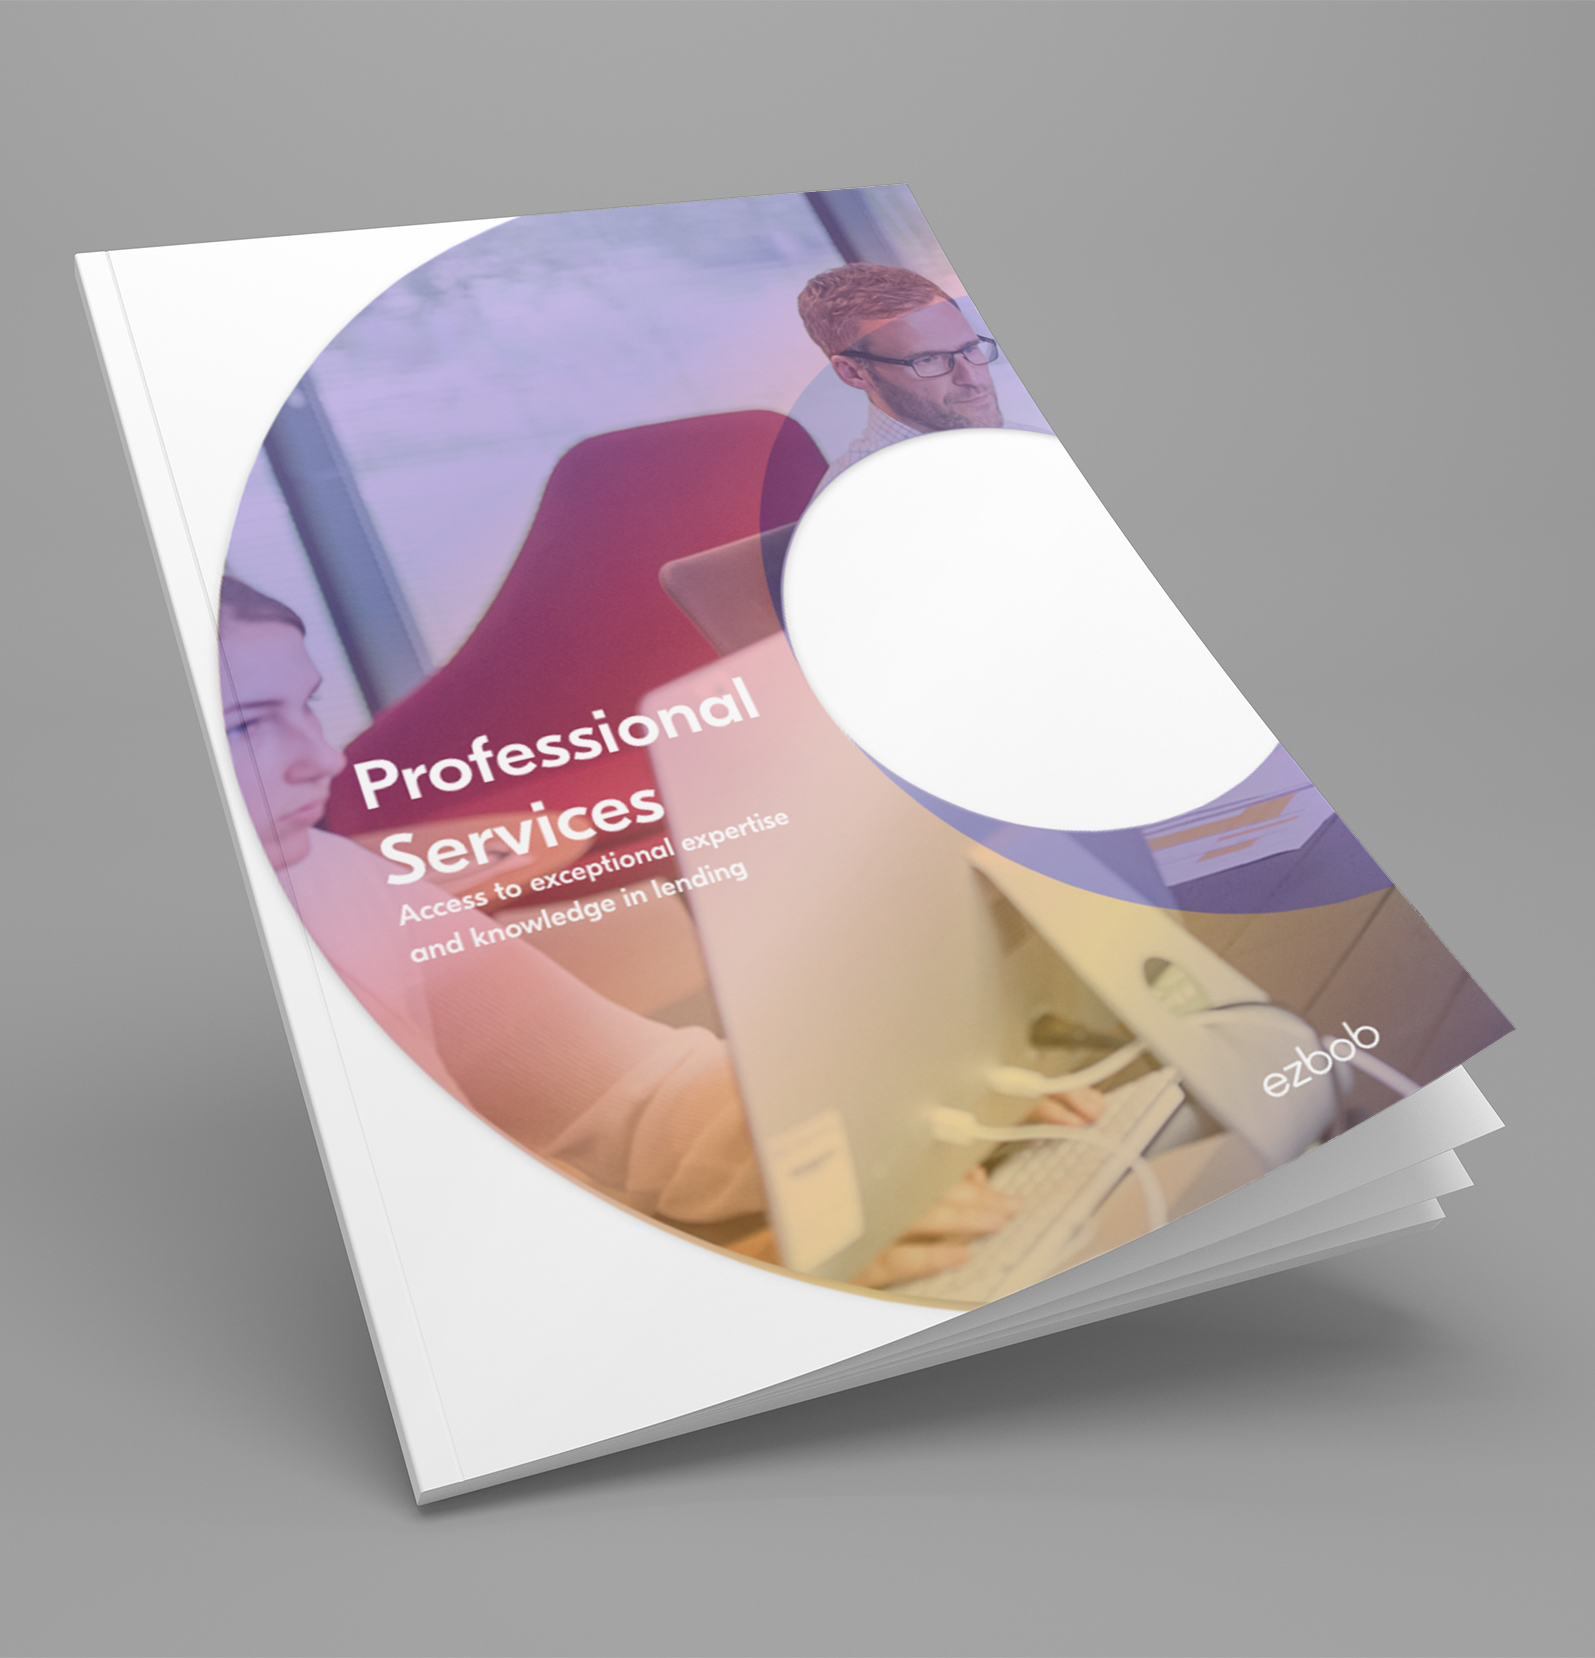 Professional Services cover01